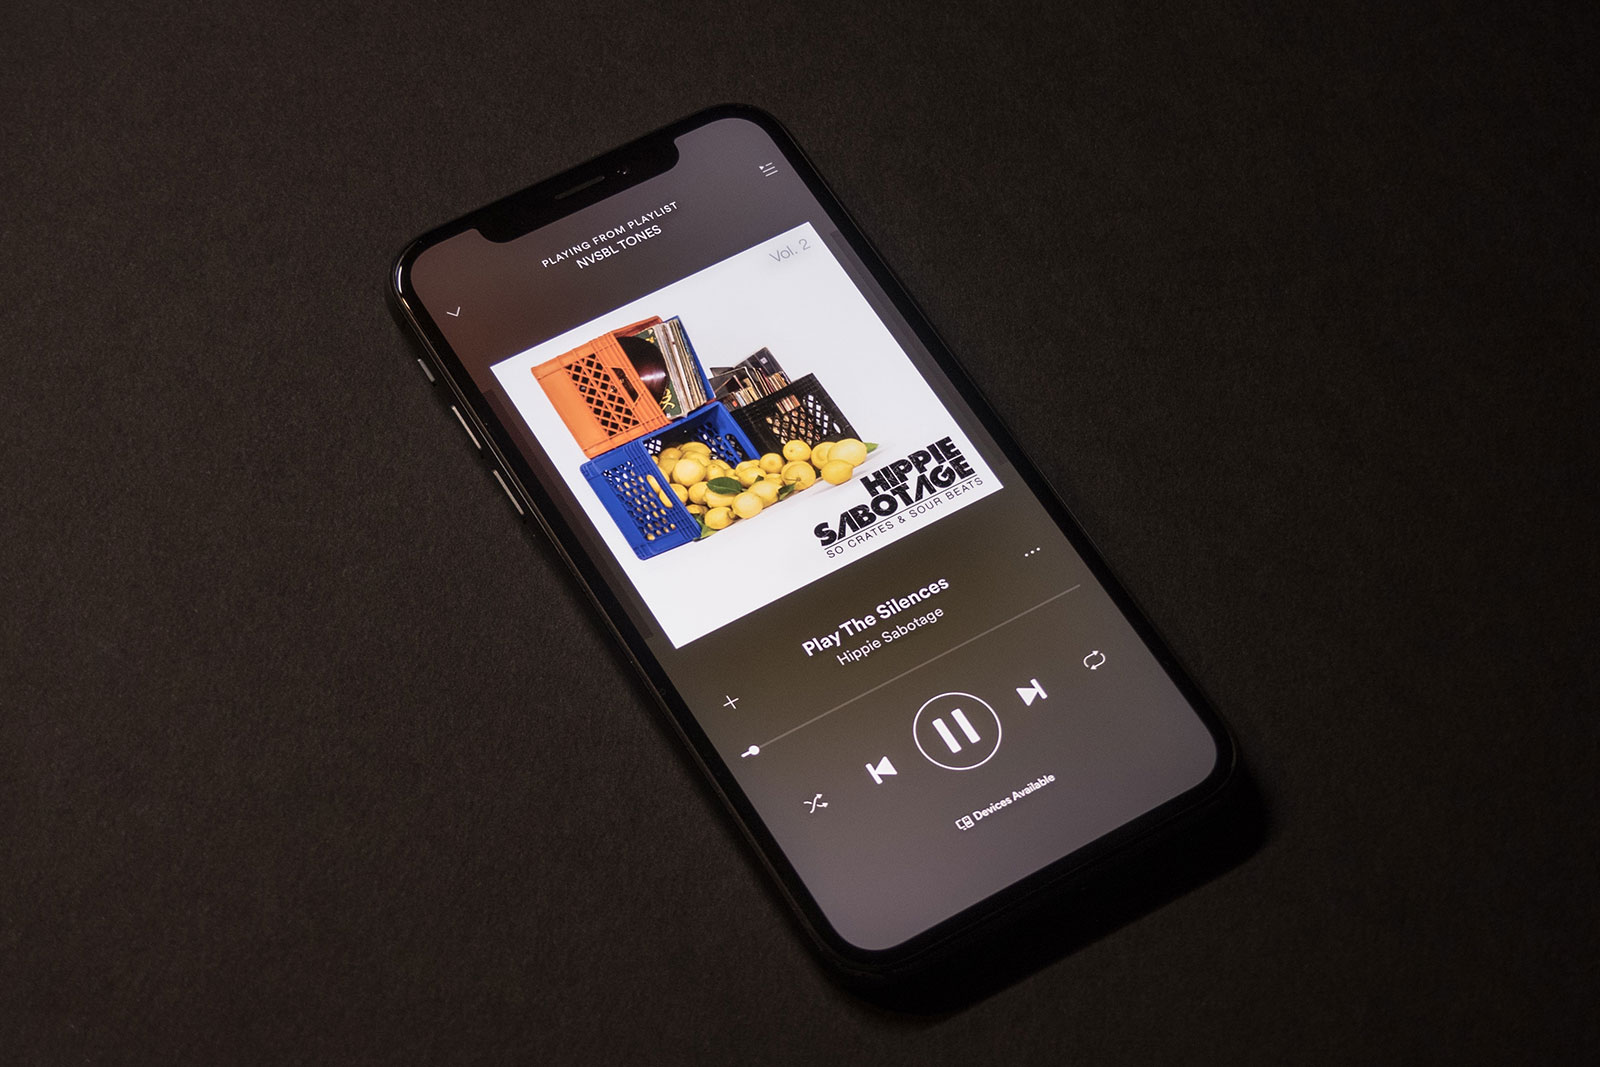 UK opens inquiry into whether music streaming is fair for artists